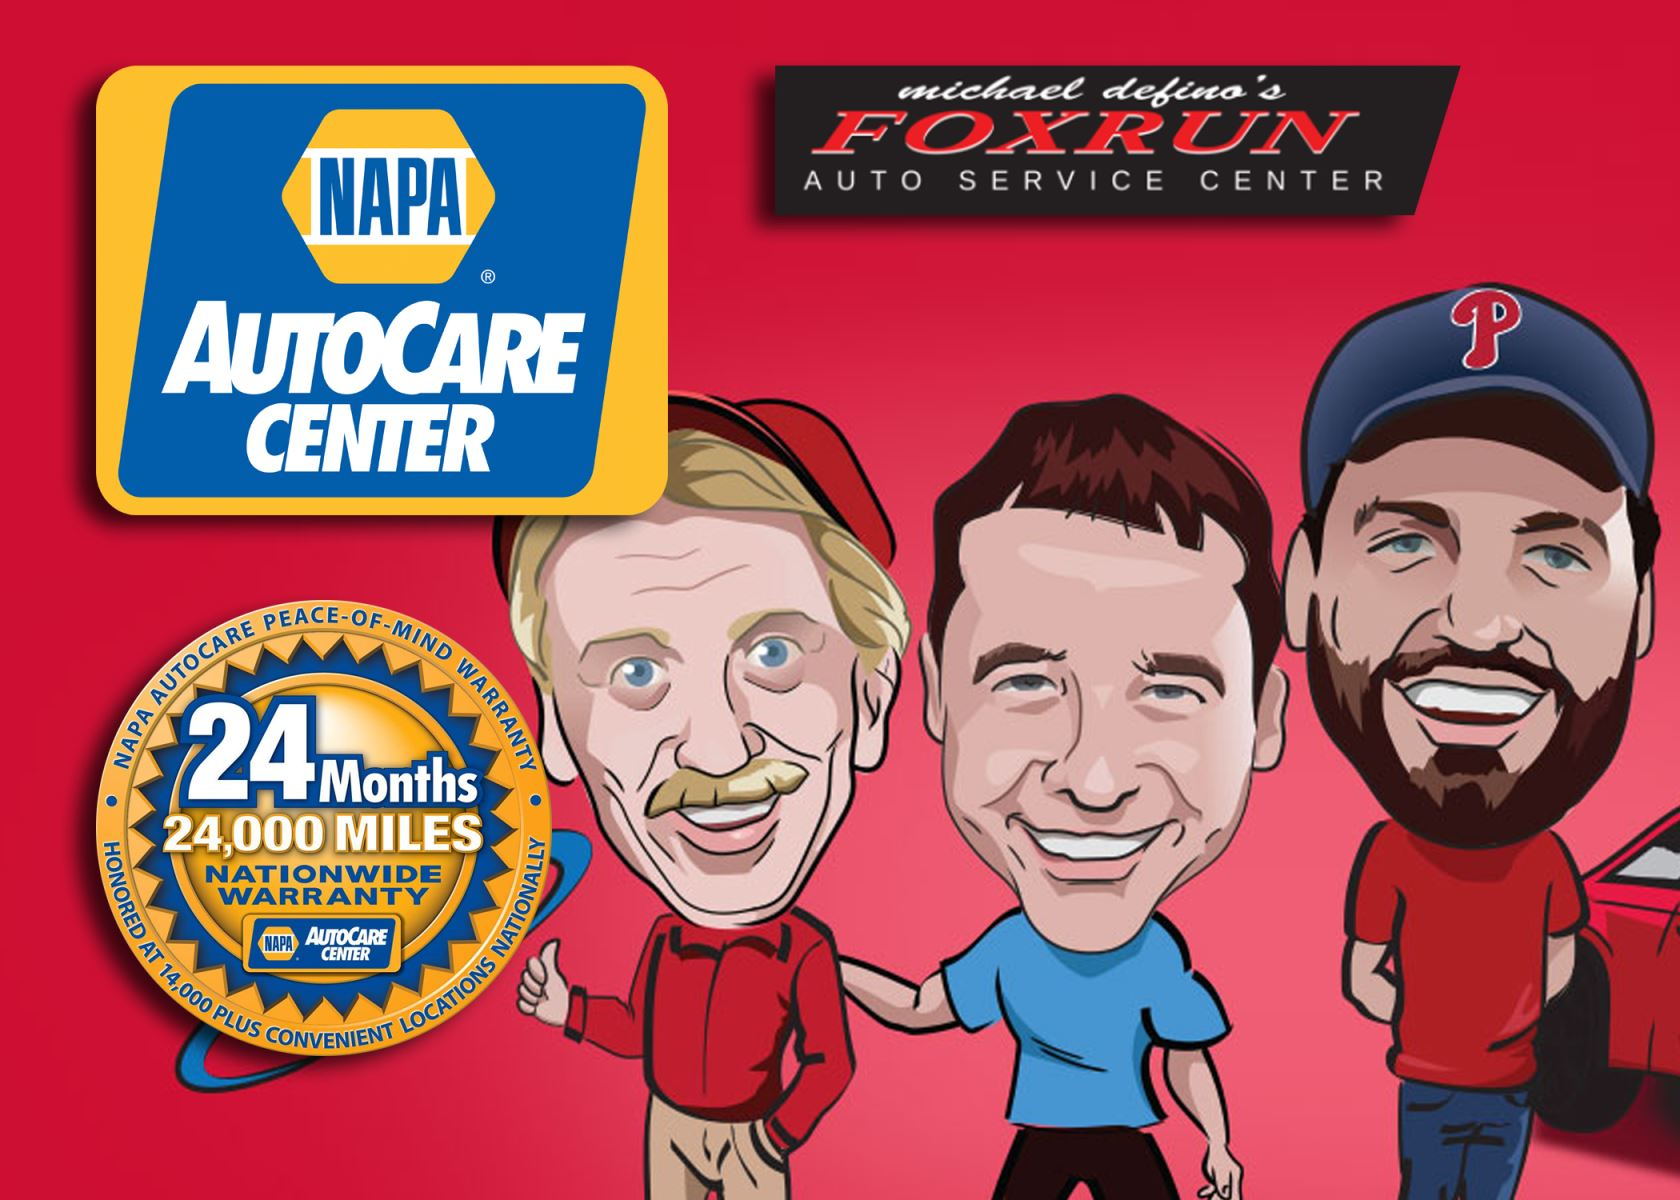 Fox Run Auto Offers the NAPA AutoCare Peace of Mind Warranty